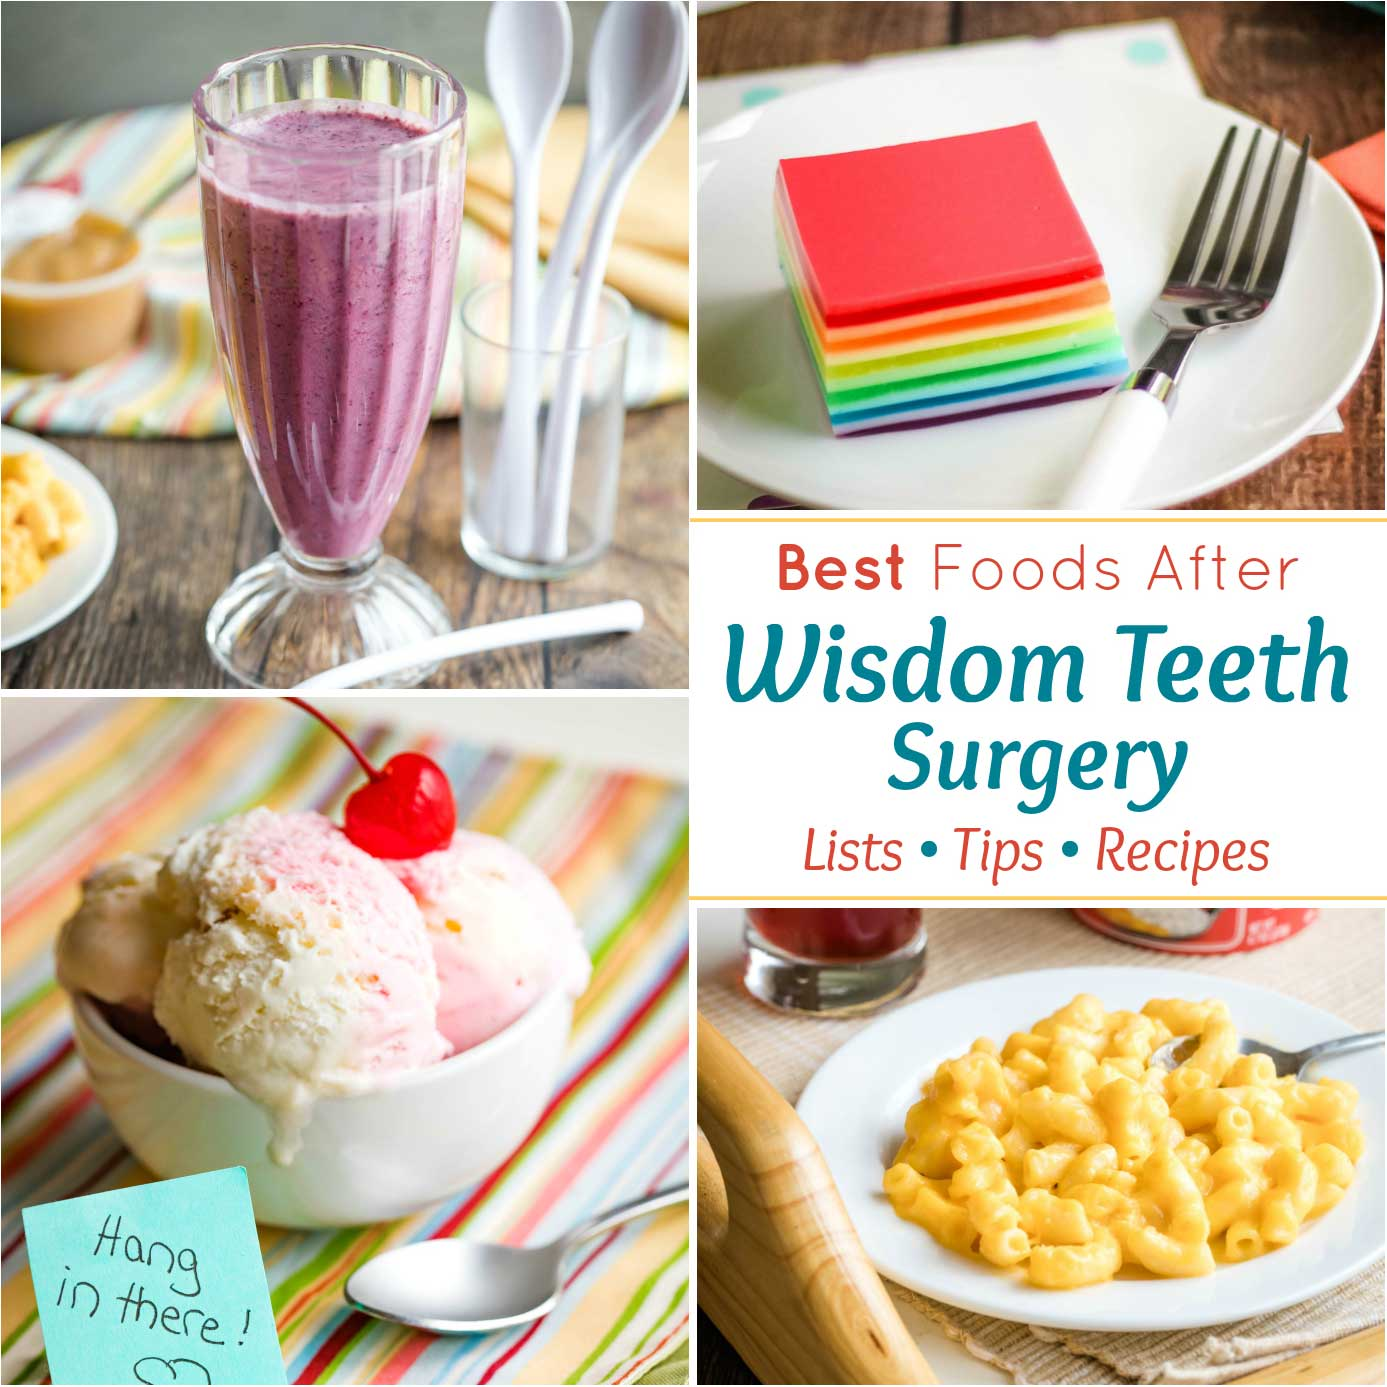 What Can I Eat After Wisdom Teeth Removal? - Two Healthy Kitchens